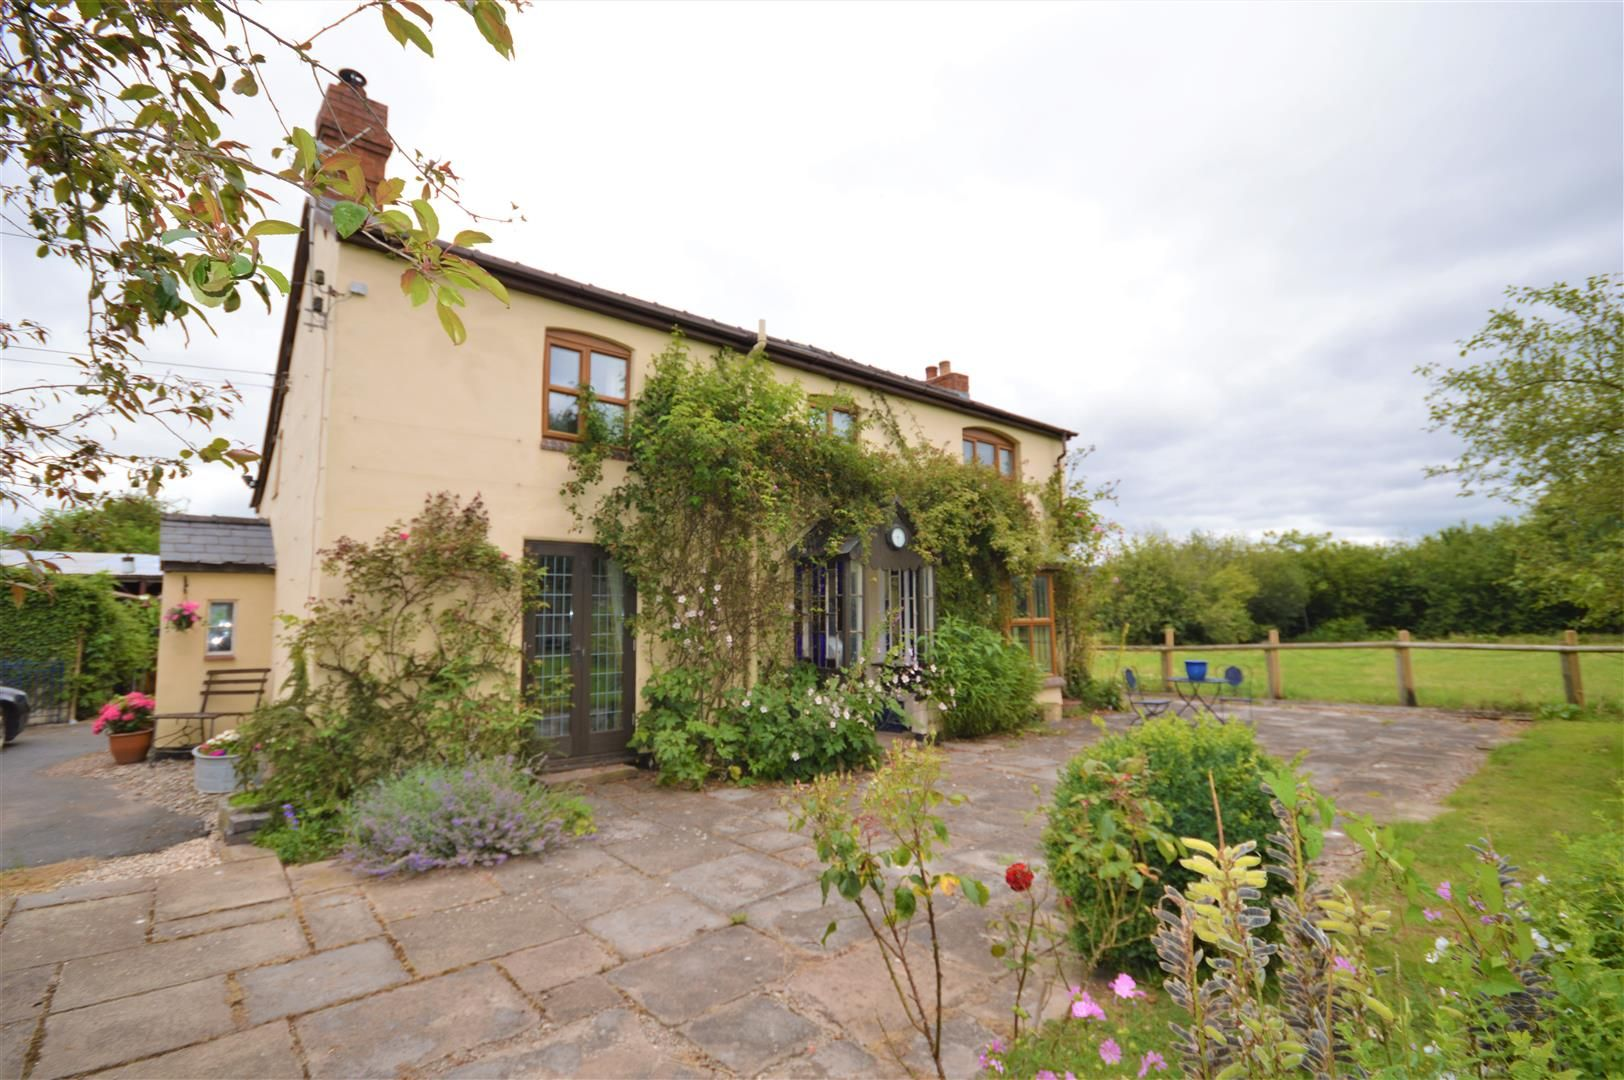 3 bed detached to rent in Preston-On-Wye - Property Image 1